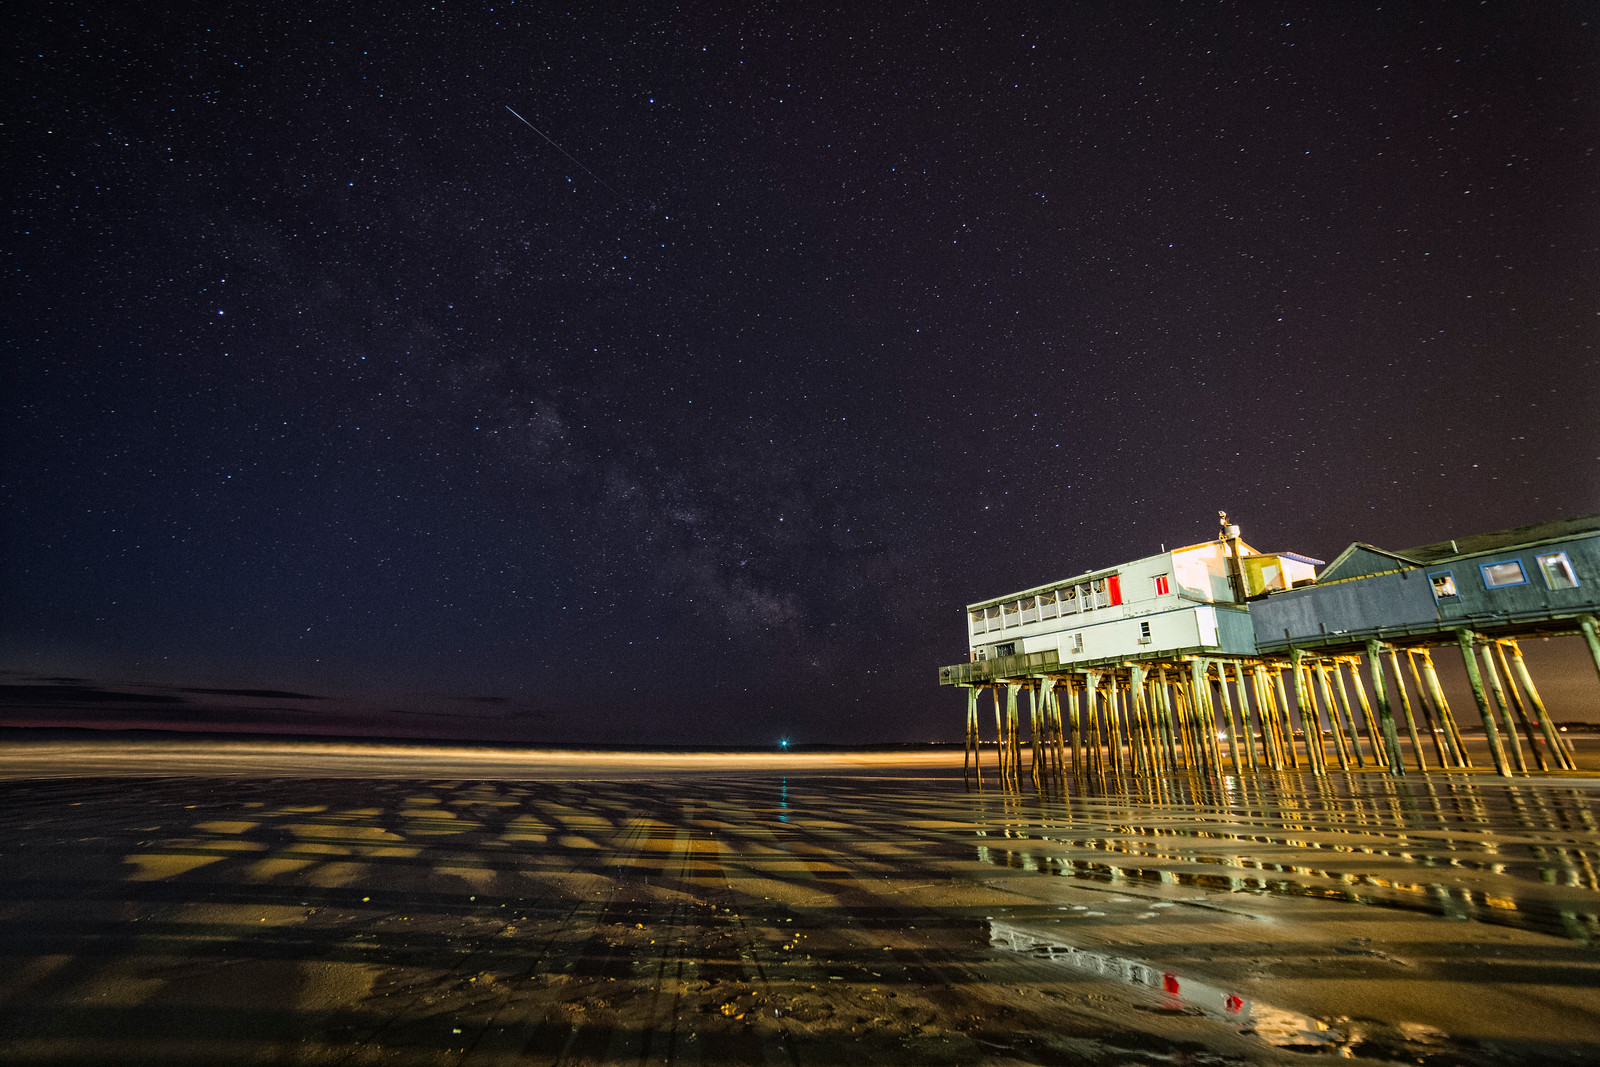 Night Skies over Old Orchard Beach Pier